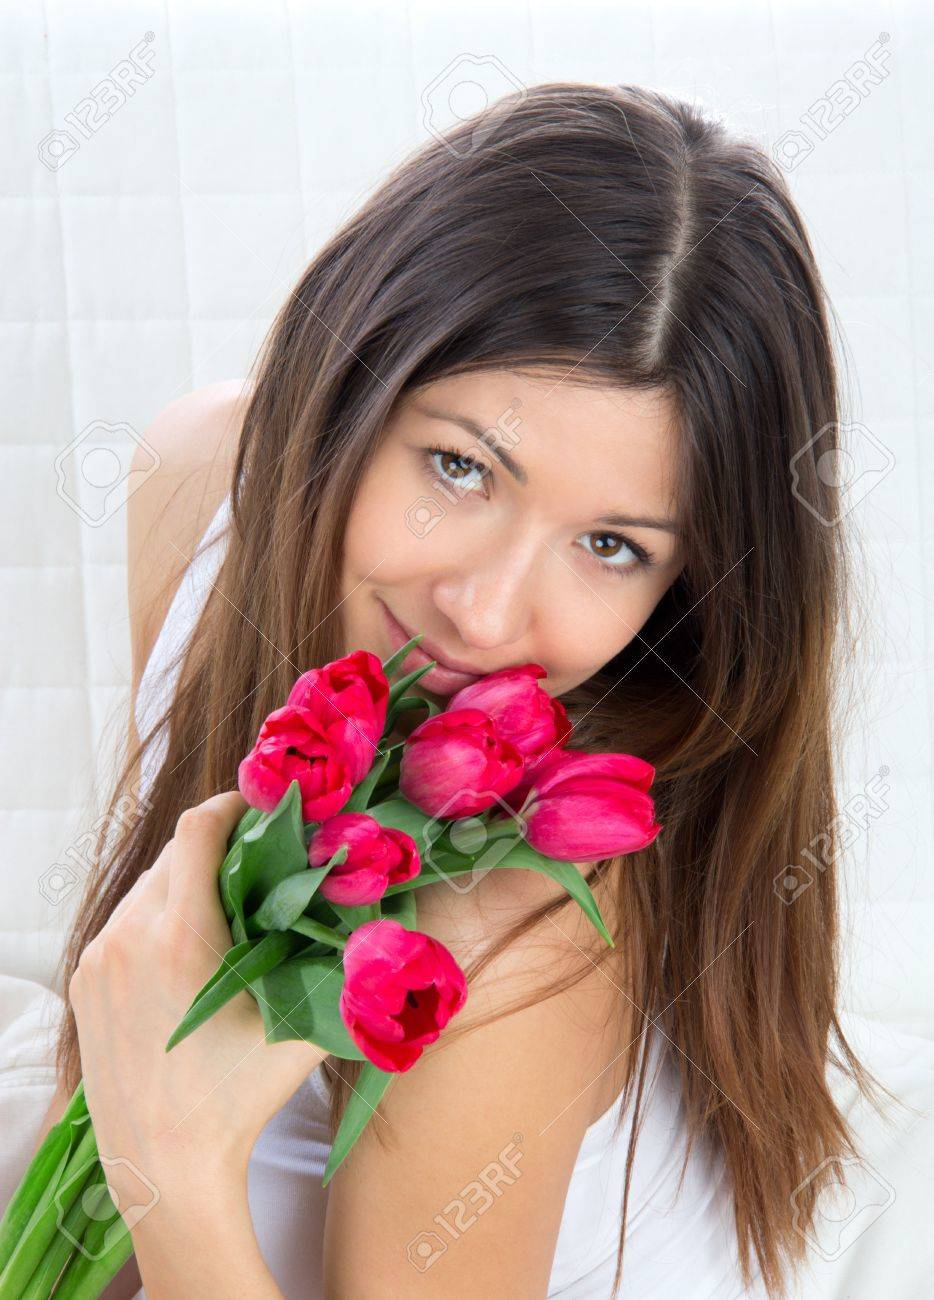 Beautiful young woman with bouquet of red tulips flowers sitting on couch, smiling Stock Photo - 12770445